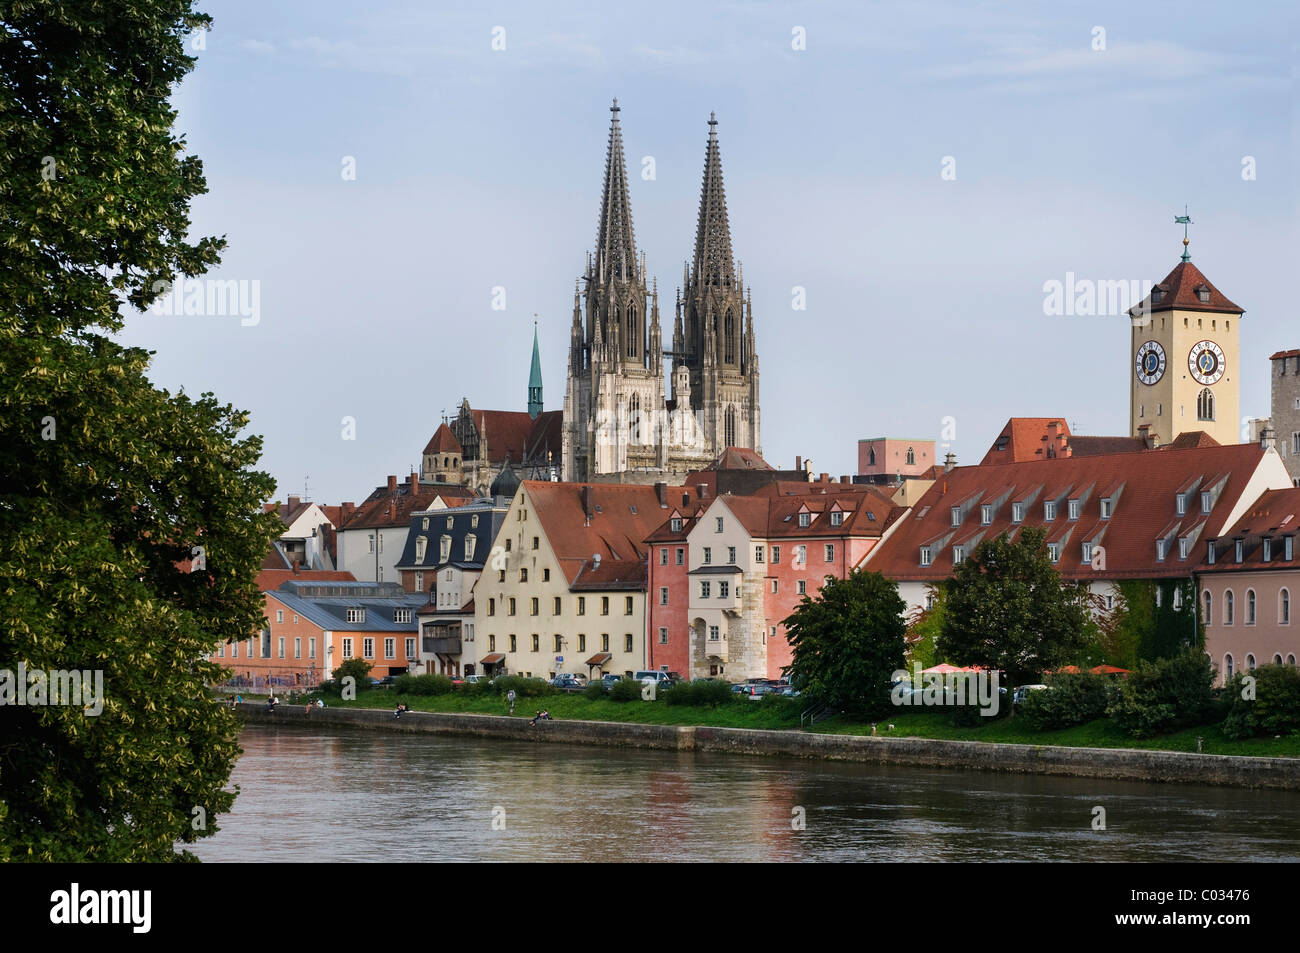 Historic district, view across the Danube River, Weinlaende harbour, the historic Rathausturm tower and Regensburg - Stock Image